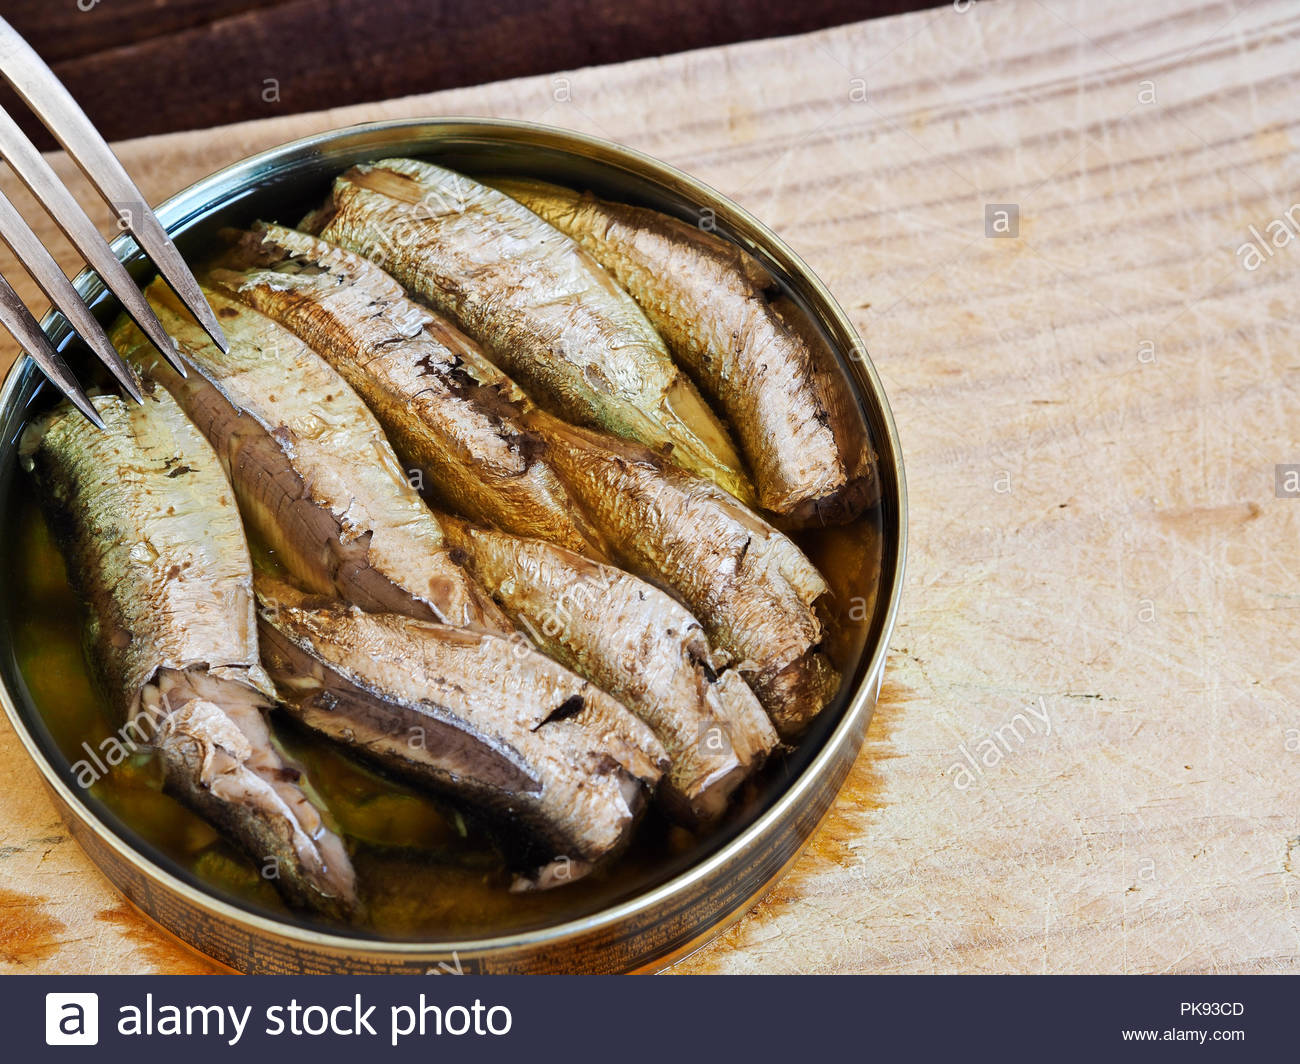 Open tin of smoked sprats in oil, with fork and copy space - Stock Image